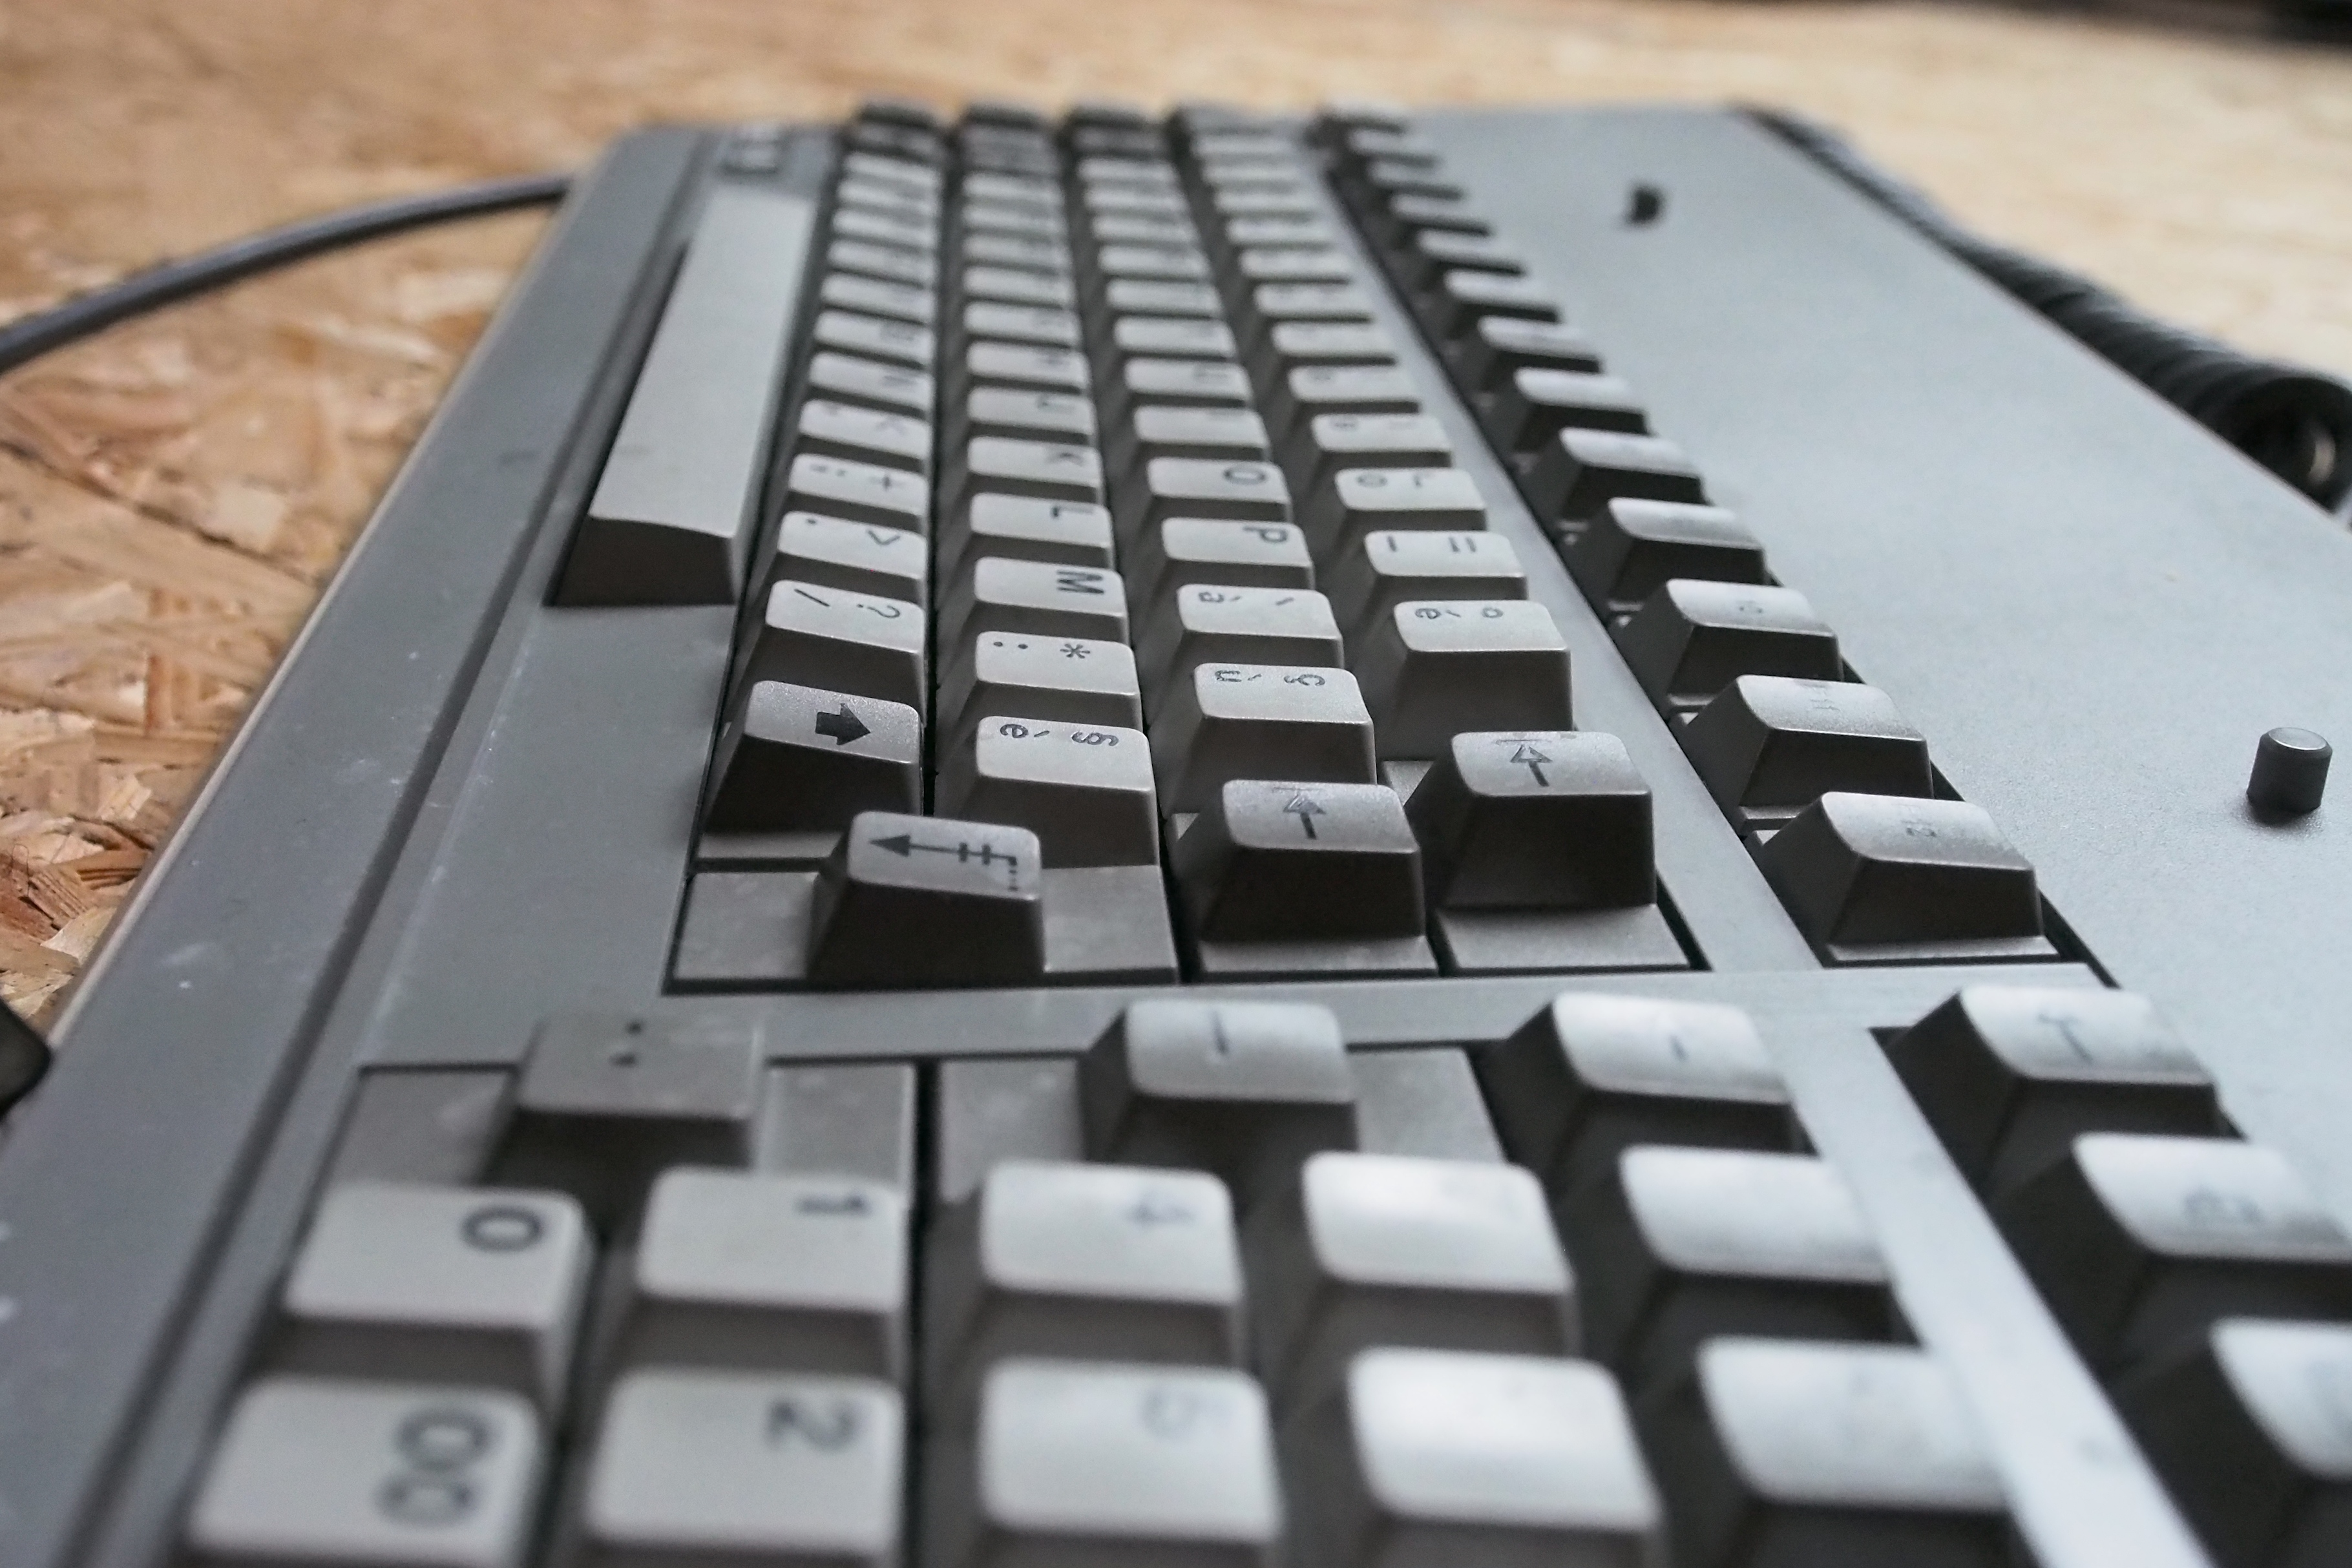 Profile of the keycaps